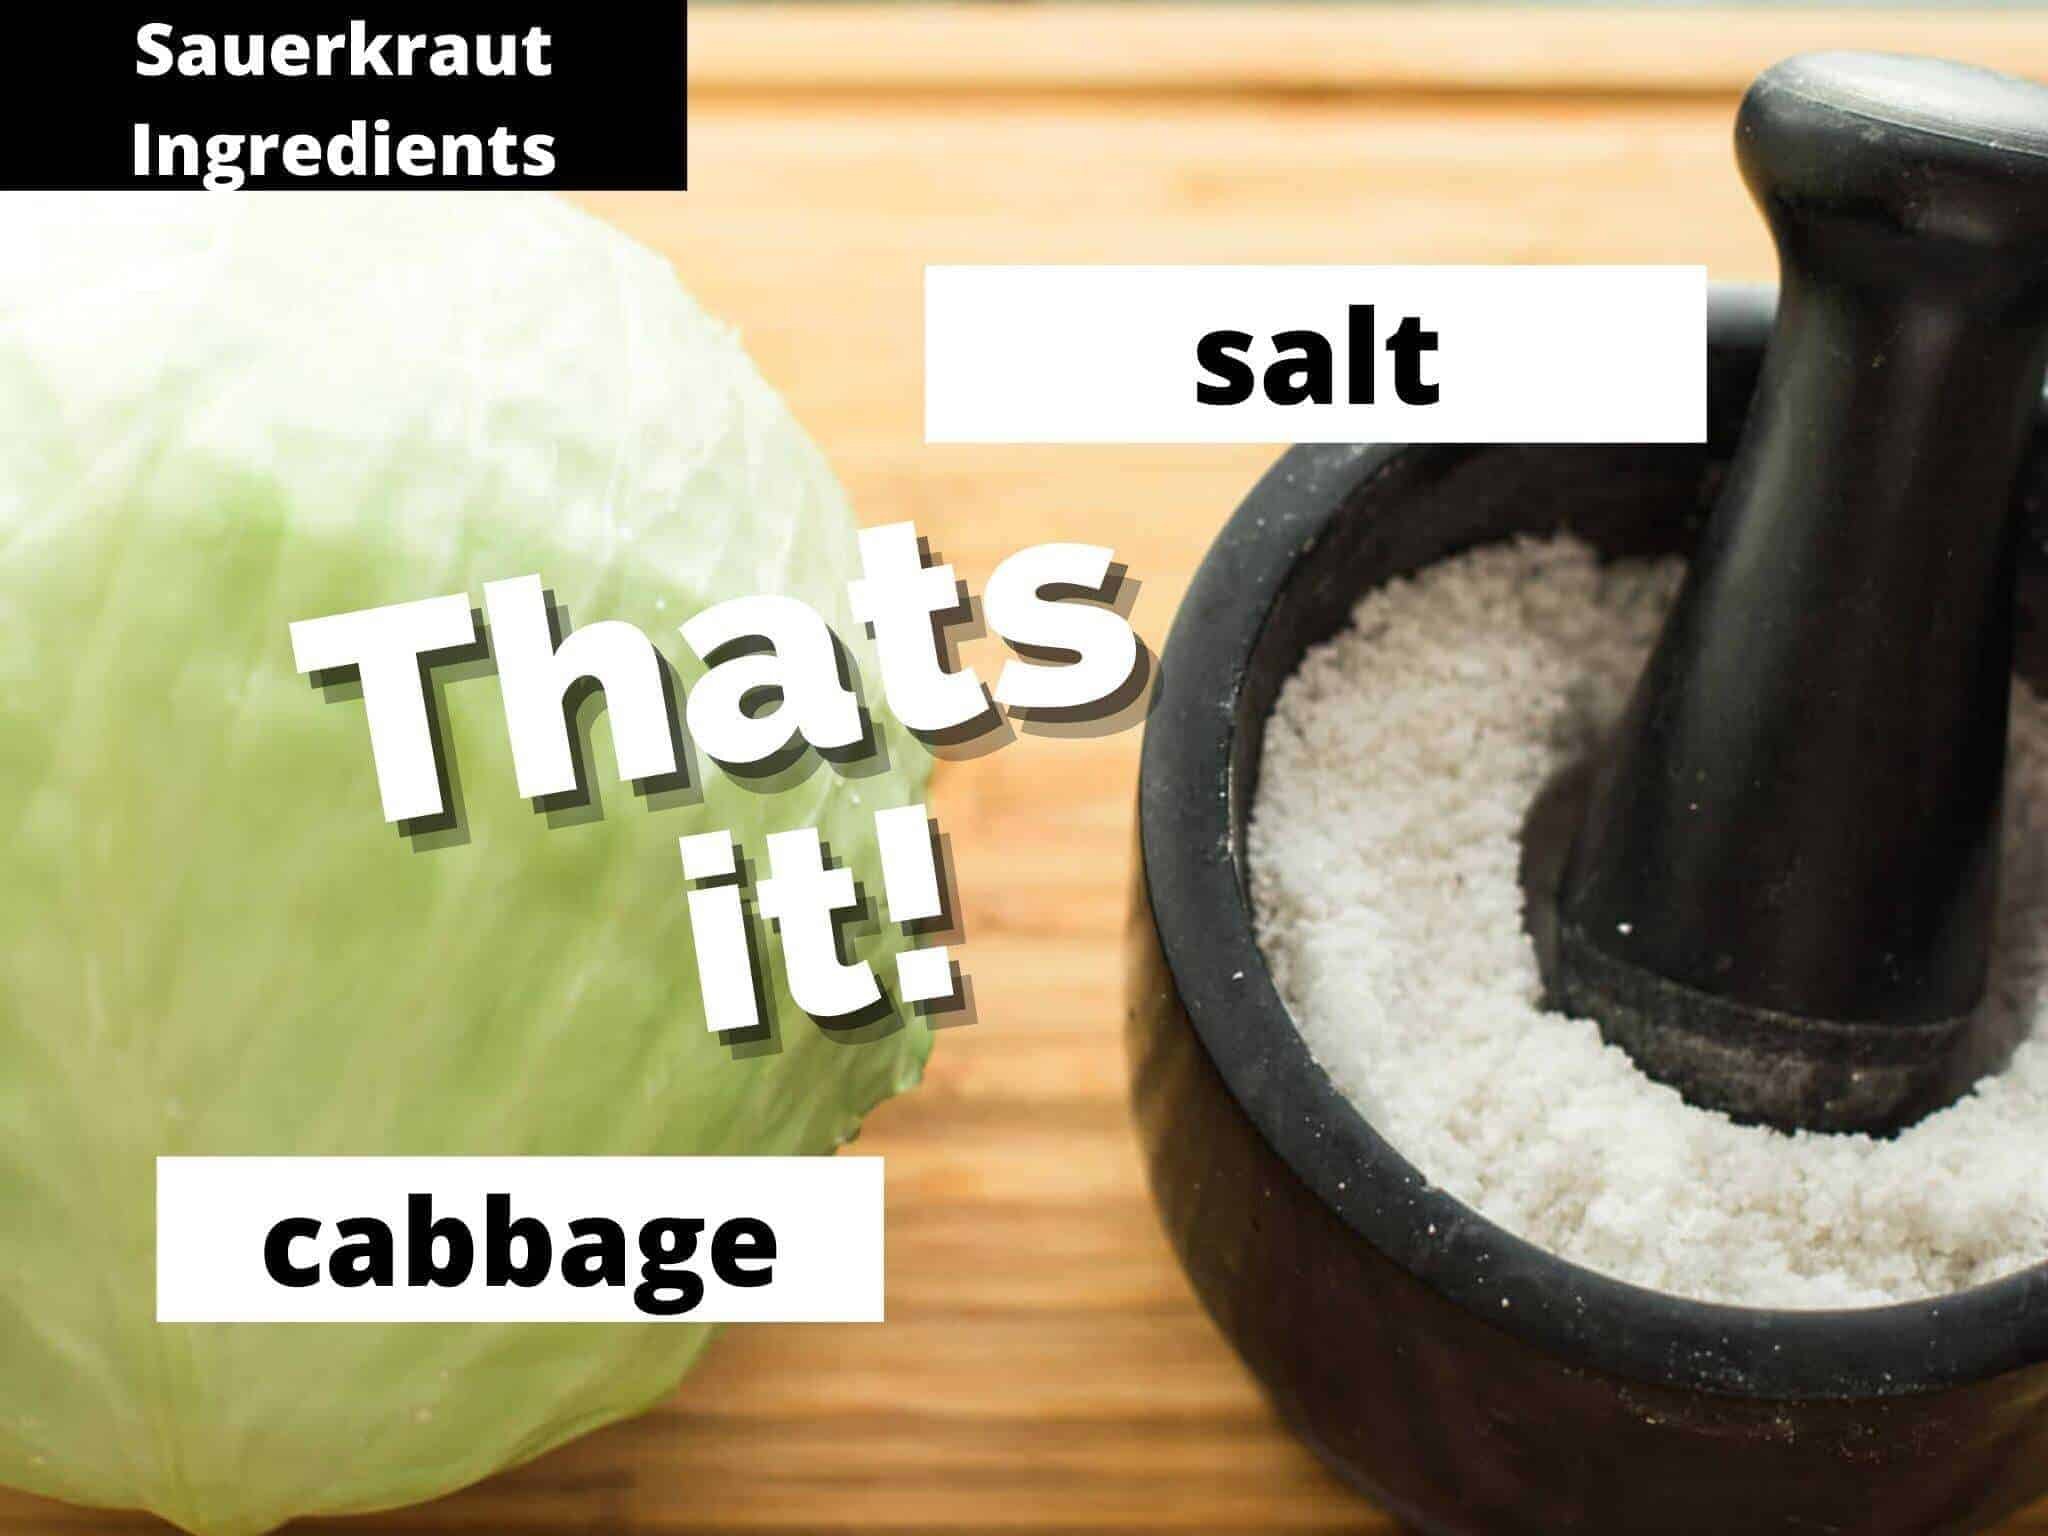 cabbage and salt on wooden board